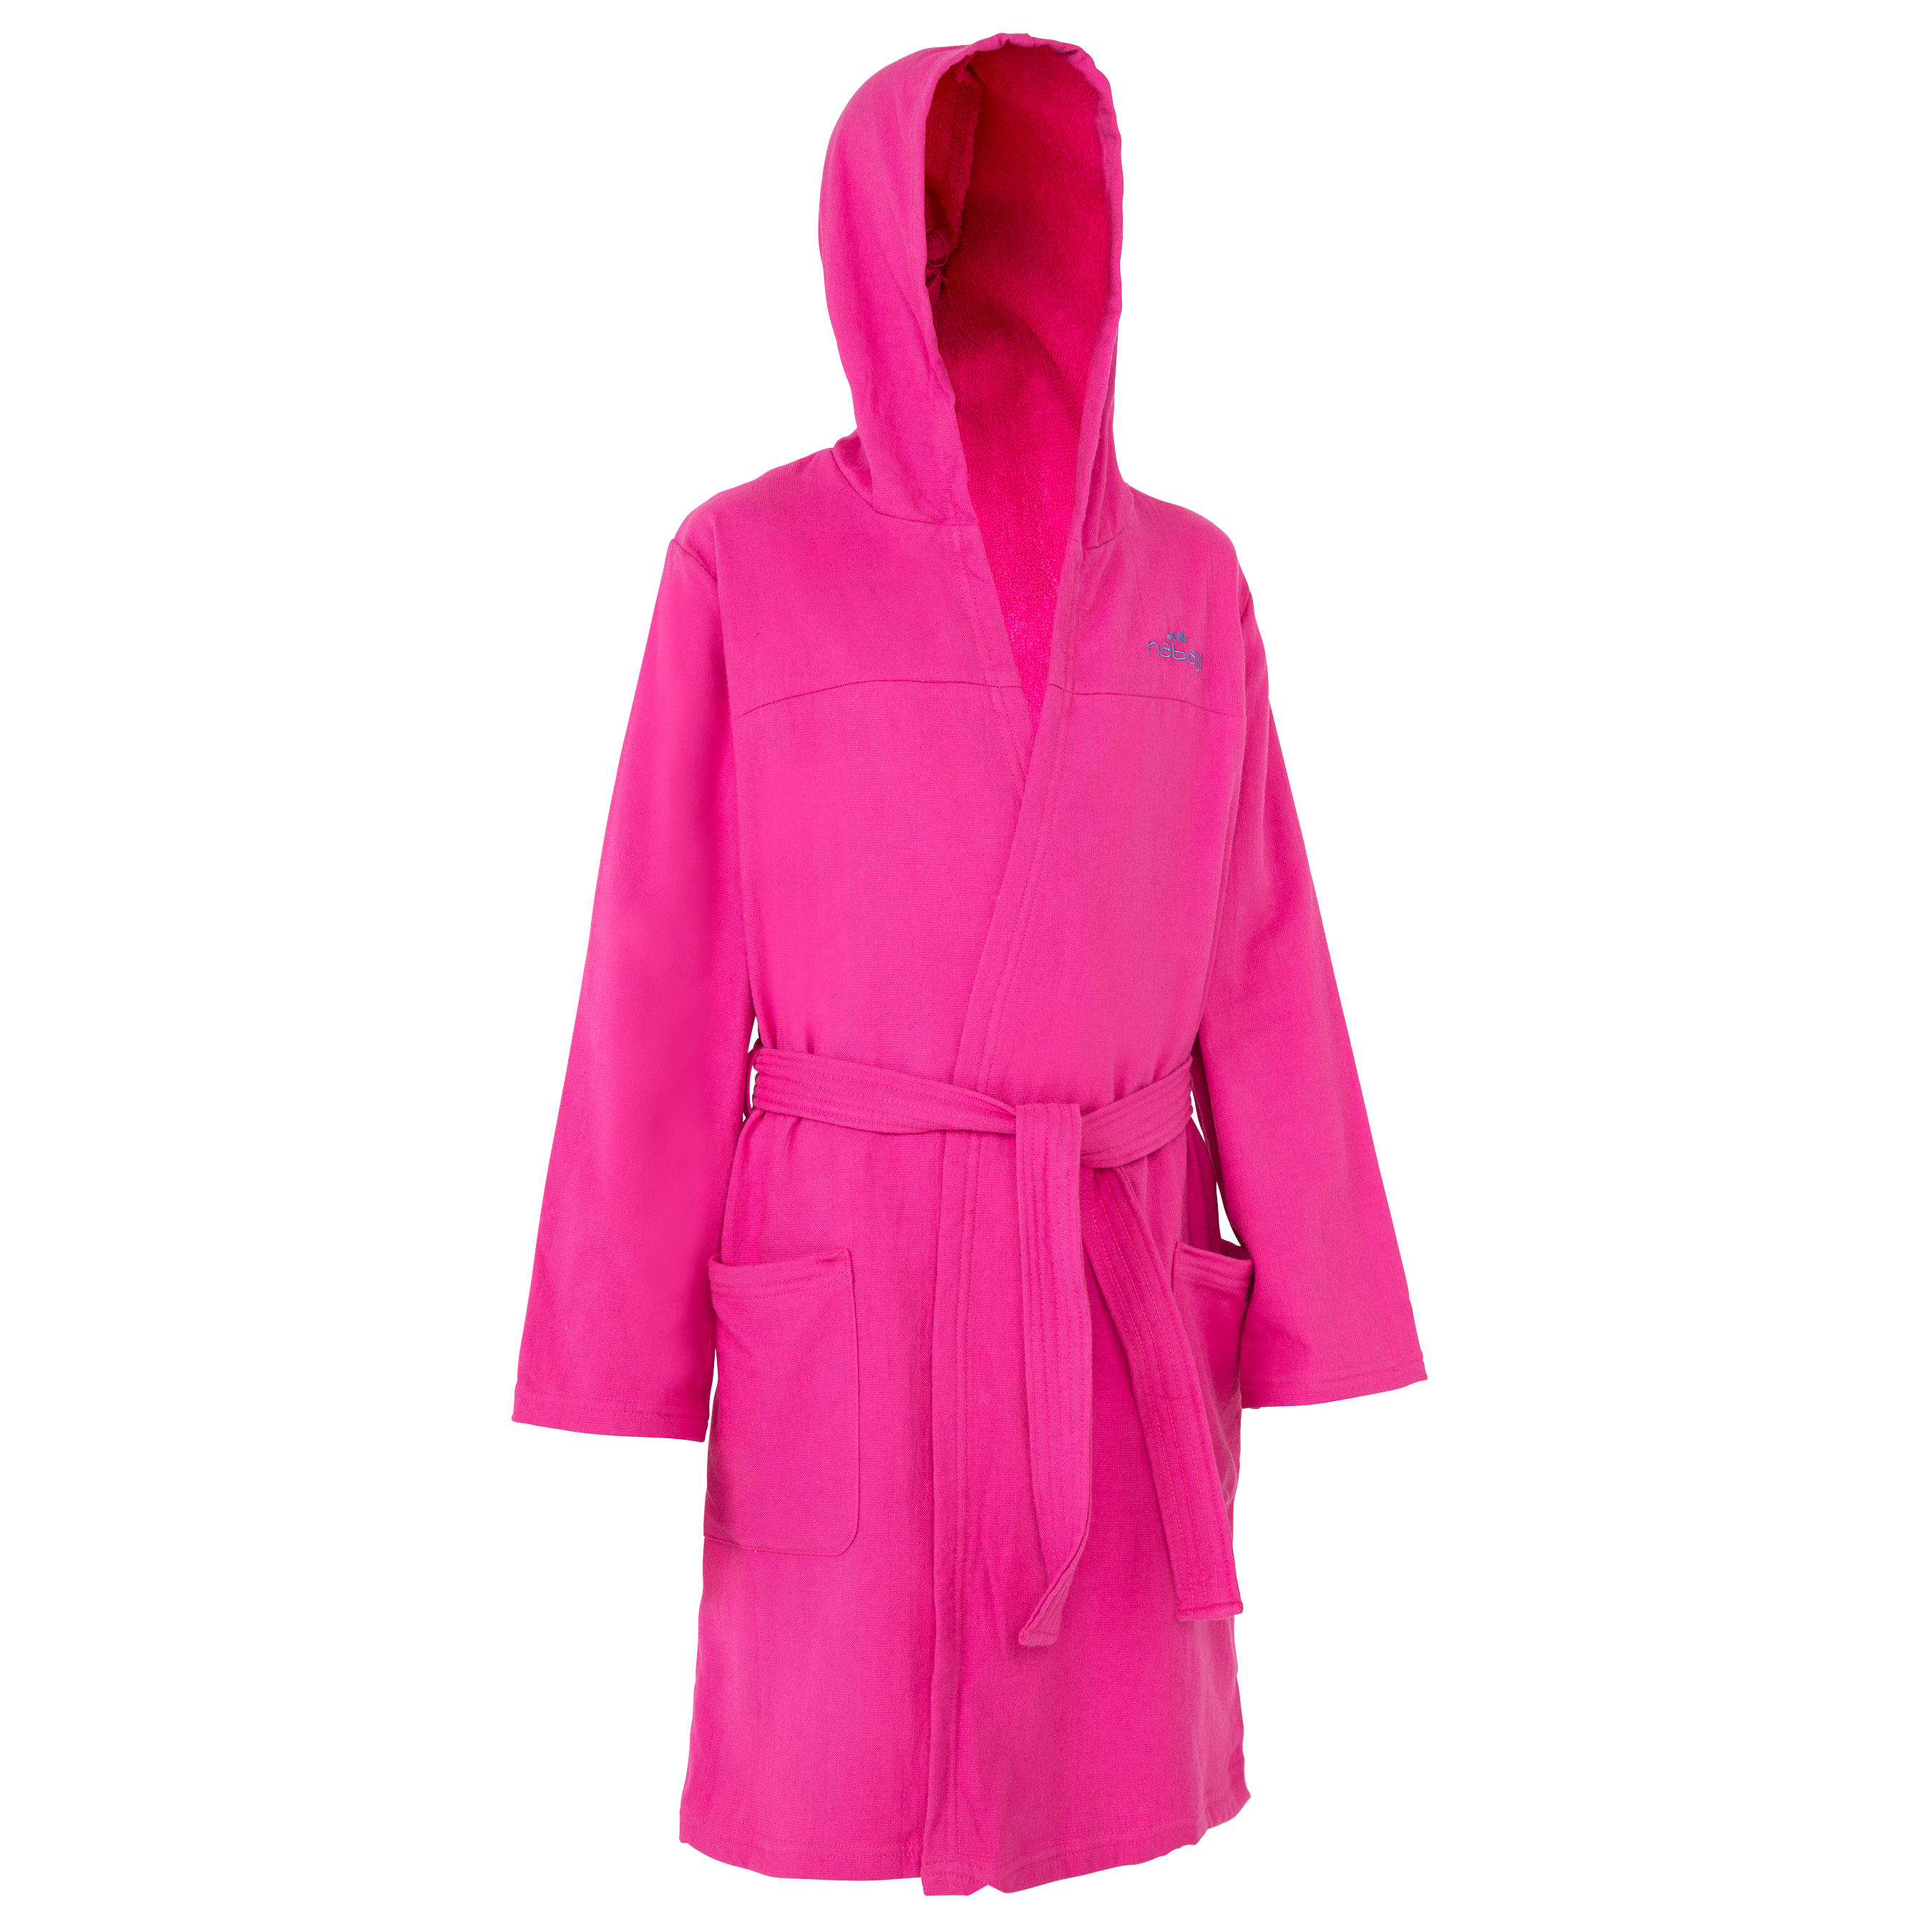 Kids' Lightweight Cotton Pool Bathrobe with Hood, Pockets and Belt – Pink